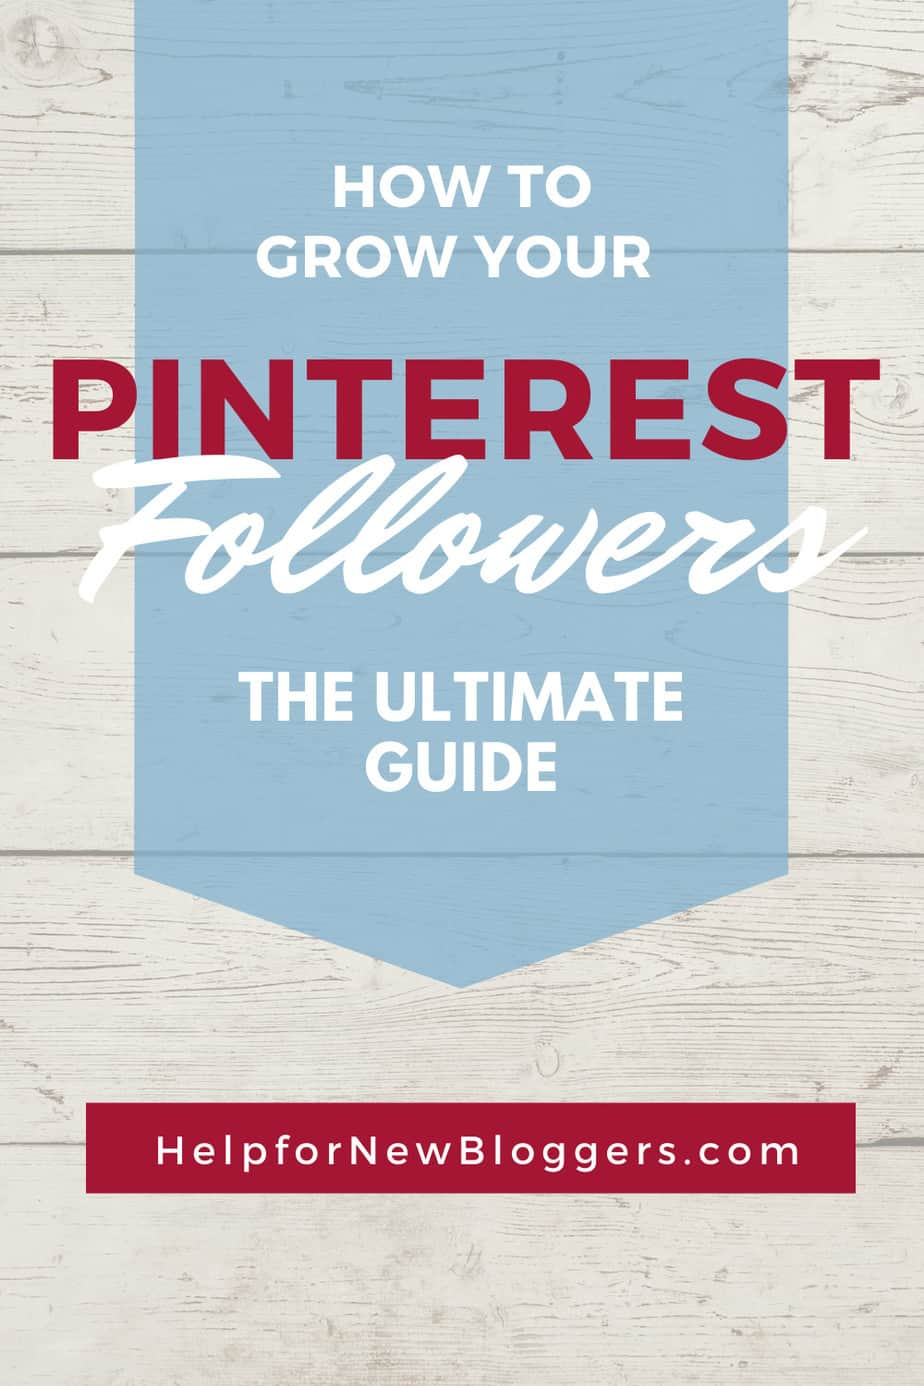 How to grow your Pinterest Followers